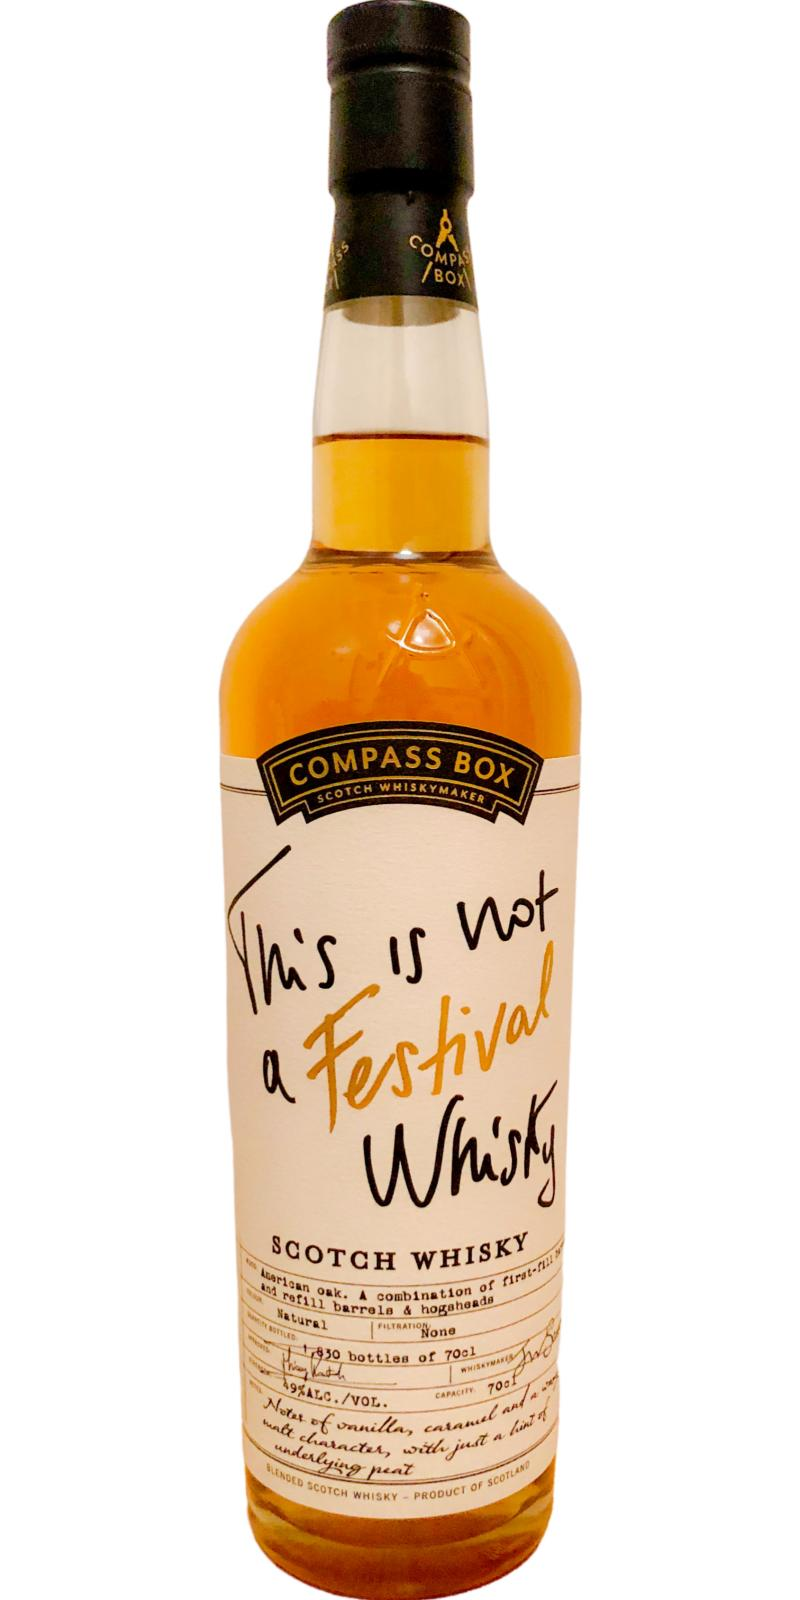 This is not a Festival Whisky NAS CB